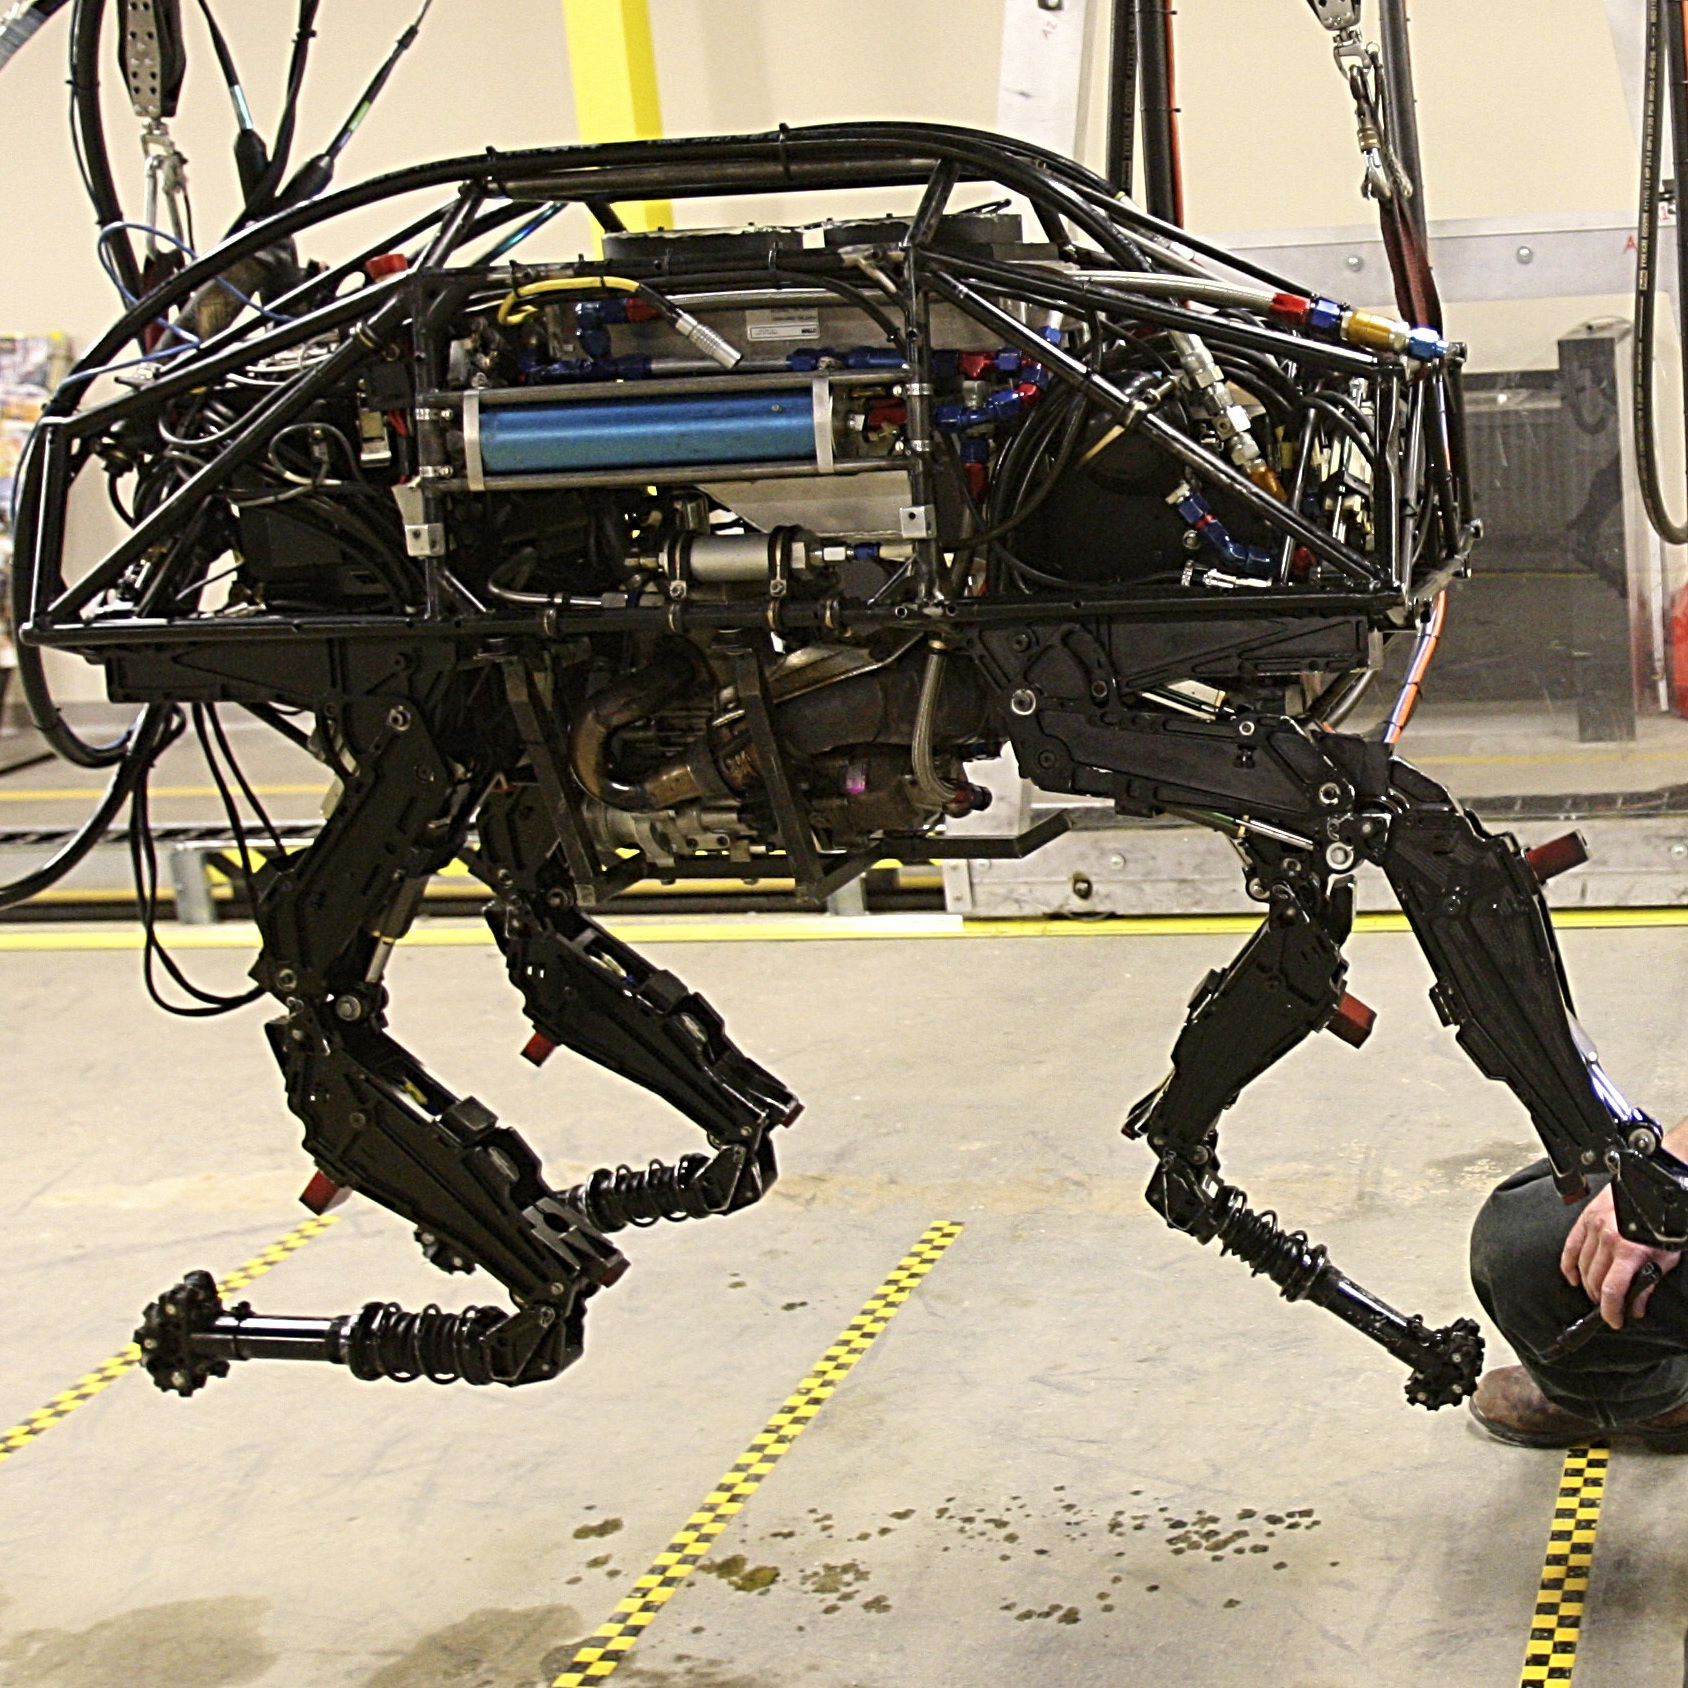 A BigDog robot at Boston Dynamics in 2010. The BigDog is being developed to help soldiers carry heavy equipment in the field. It can follow a human being, walking across wet/sandy/rocky terrain, just like a dog would.